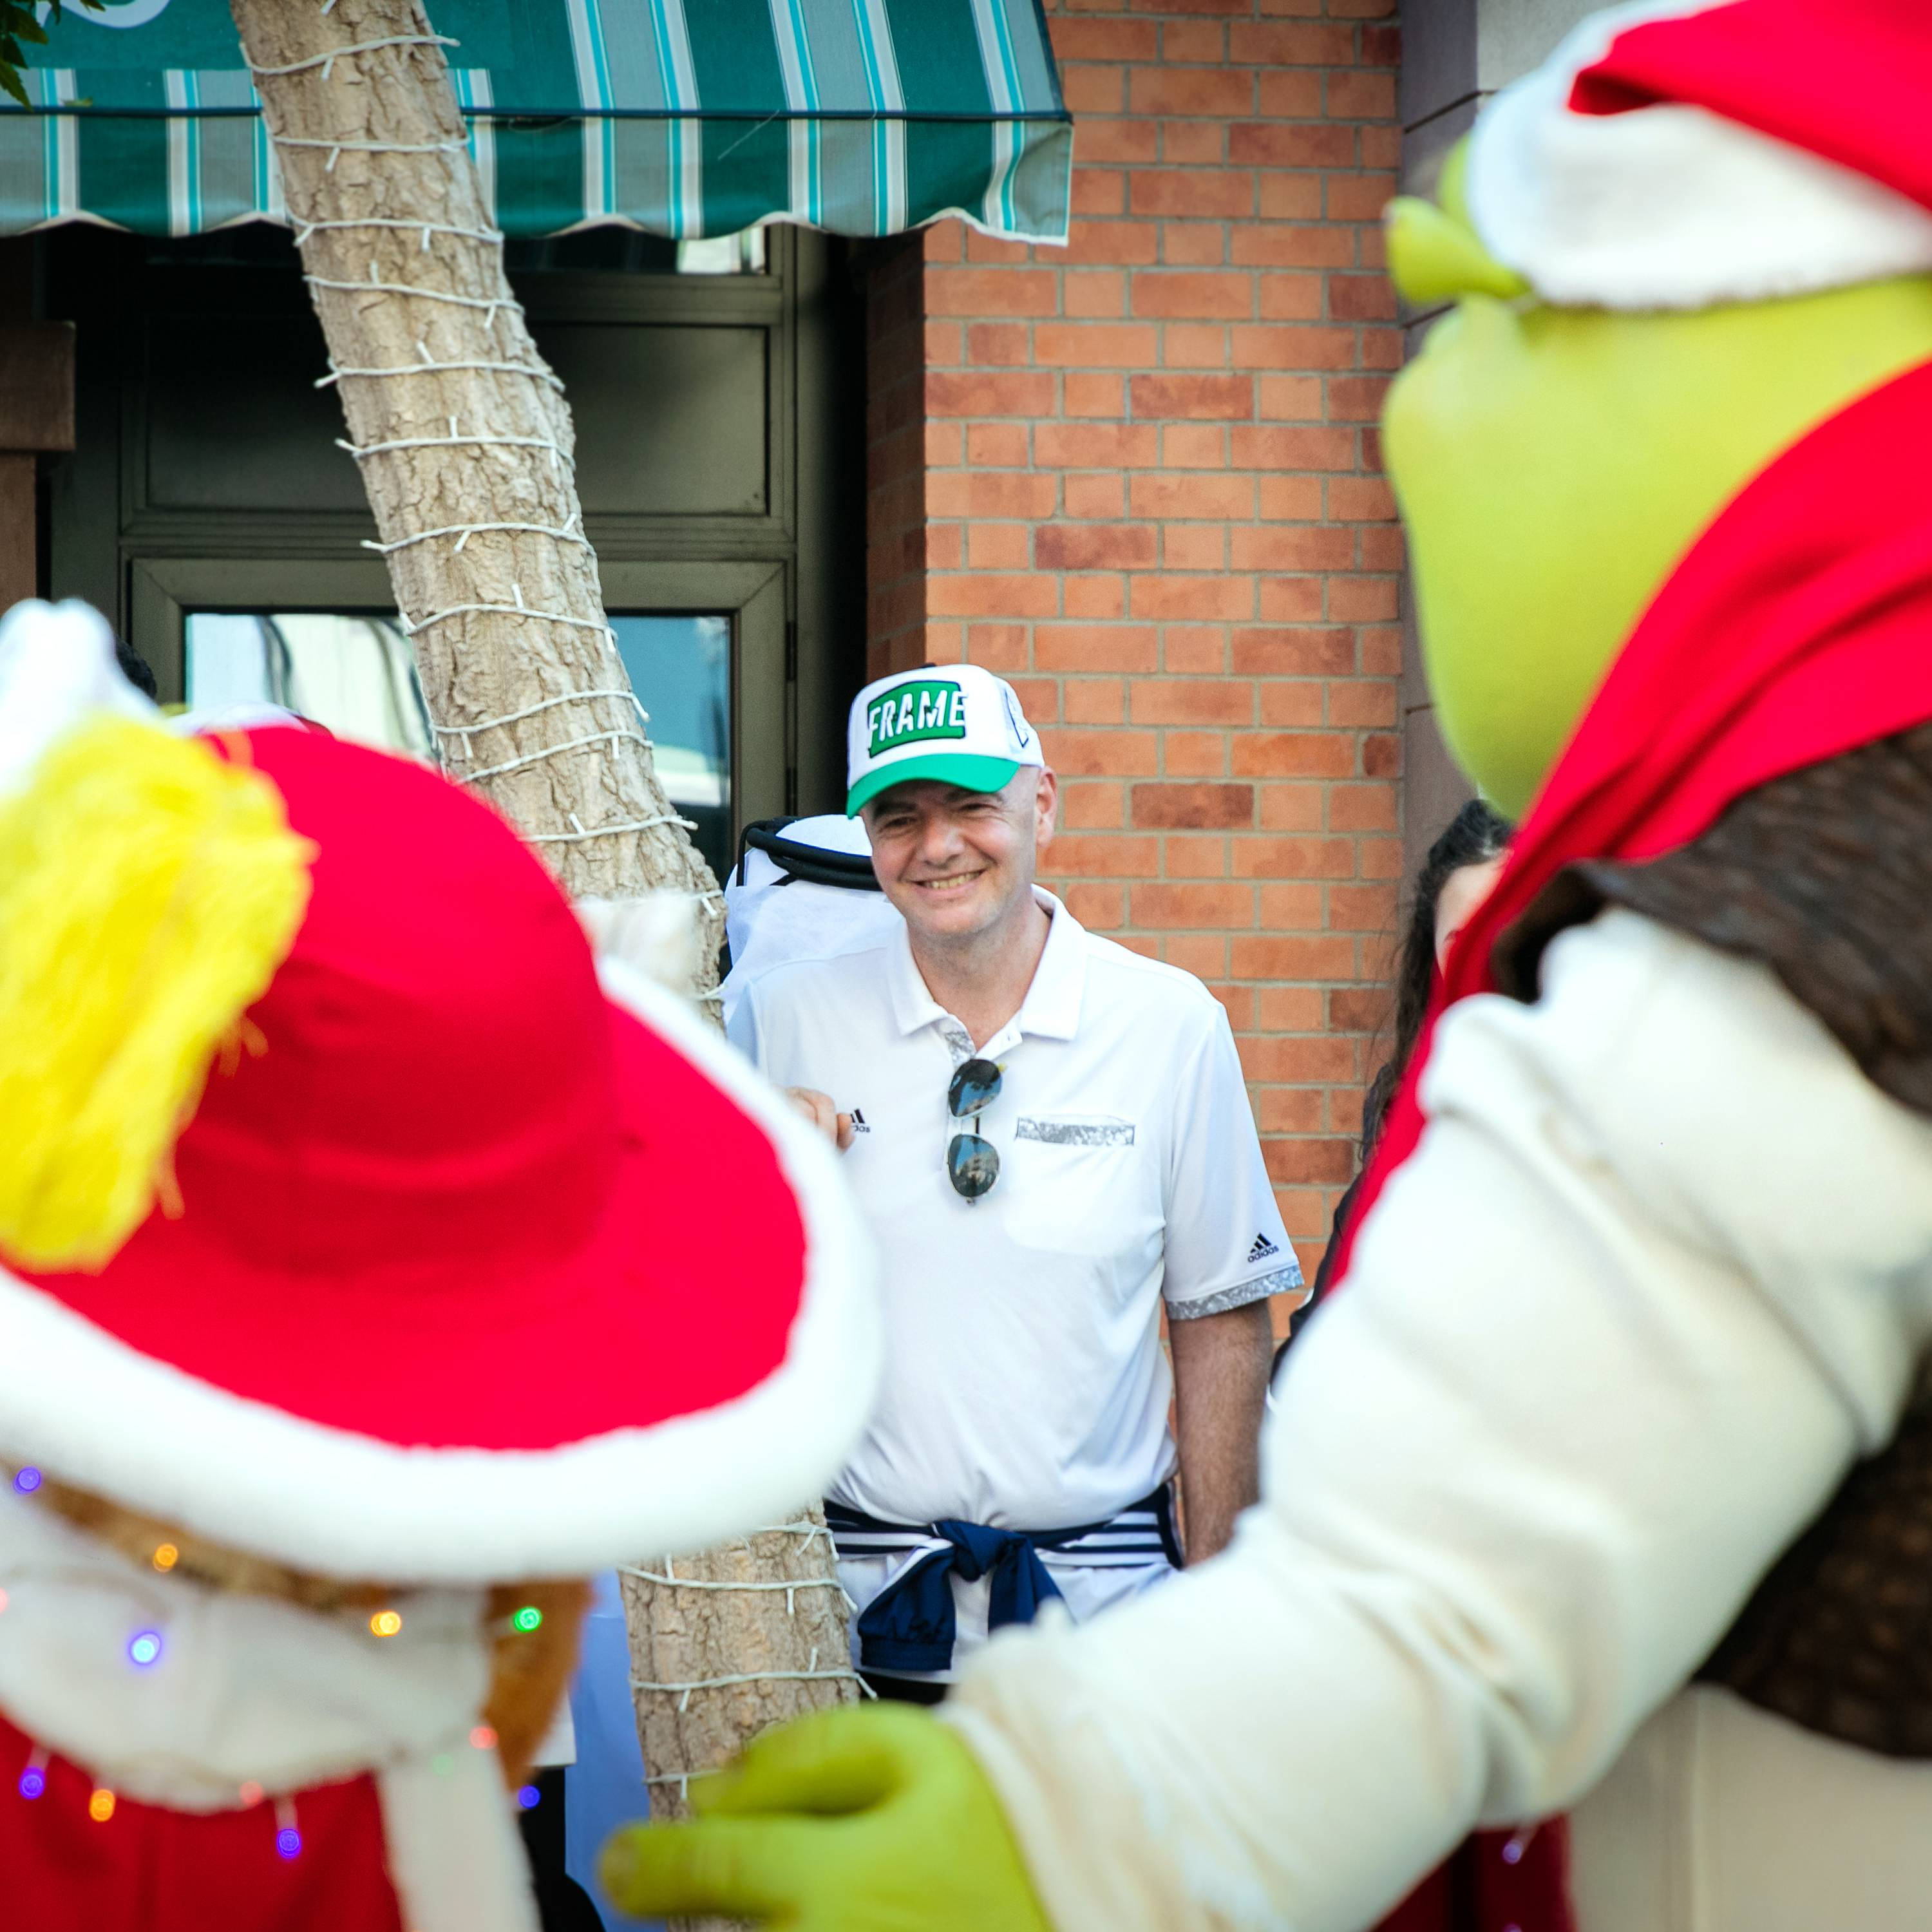 FIFA President Gianni Infantino visited Dubai Parks and Resorts